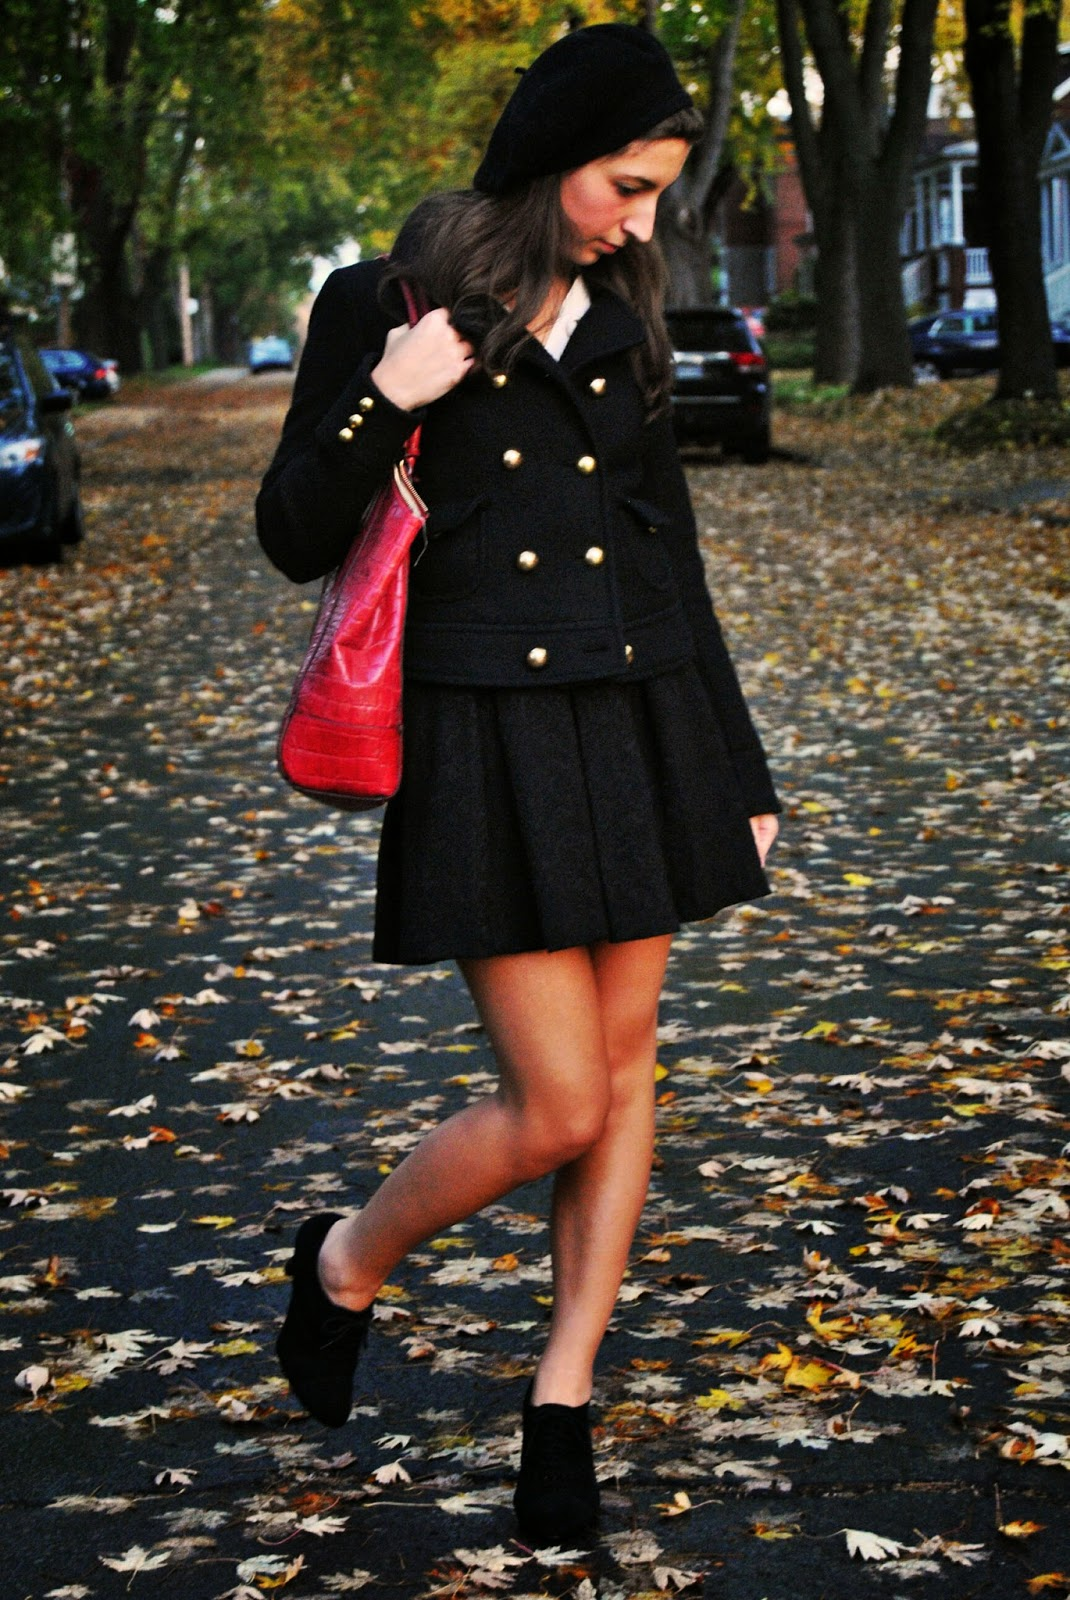 fall fashion red handbag black skirt jacket gold buttons beret